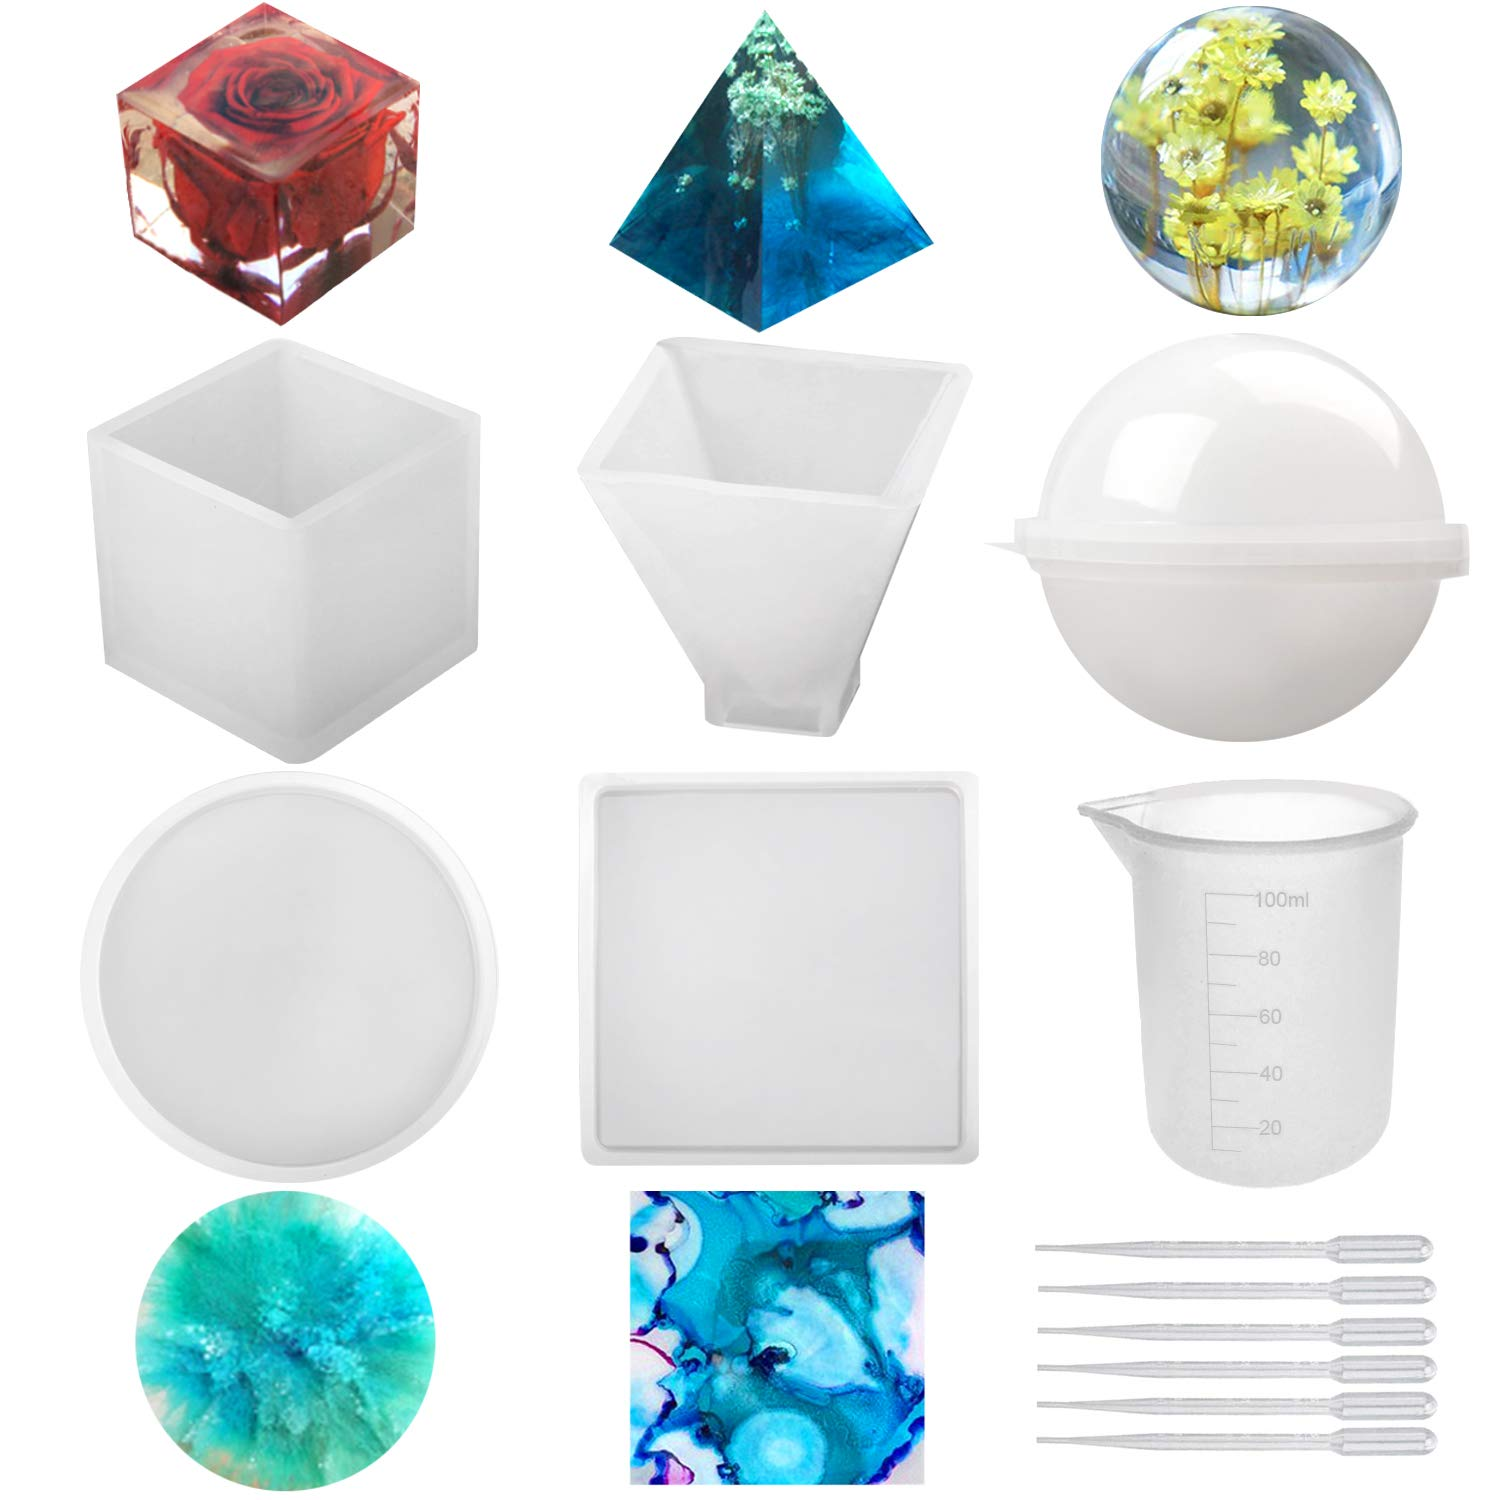 Silicone Resin Molds 5Pcs Resin Casting Molds Including Sphere, Cube, Pyramid, Square, Round with 1 Measuring Cup & 5 Plastic Transfer Pipettes for Resin Epoxy, Candle Wax, Soap, Bowl Mat etc by DANJIA